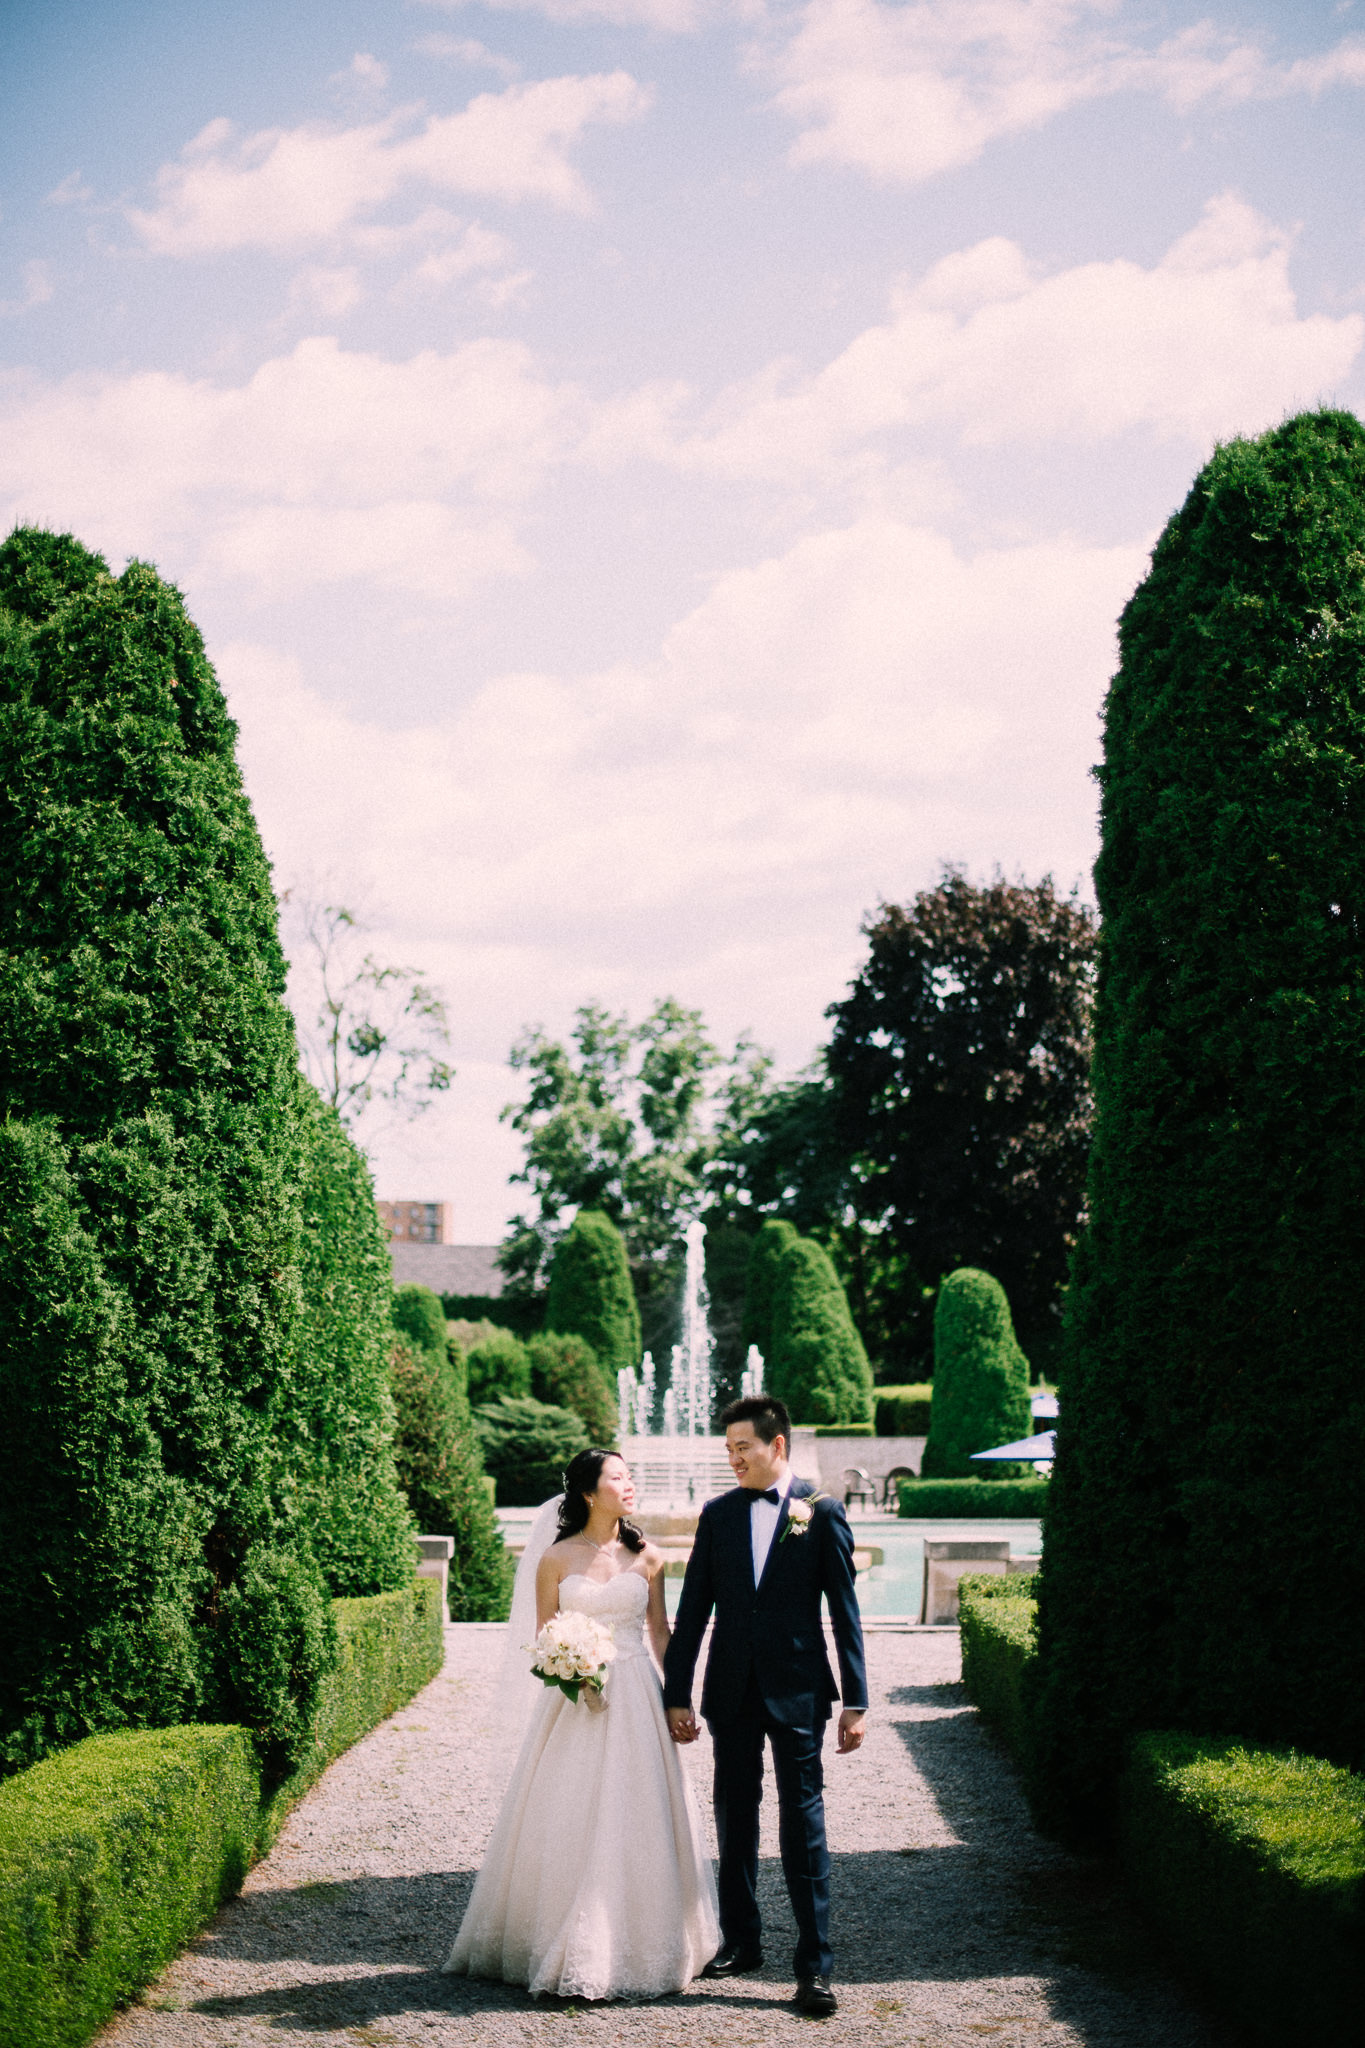 Oshawa summer wedding at Parkwood Estate by Max Wong Photo (29)